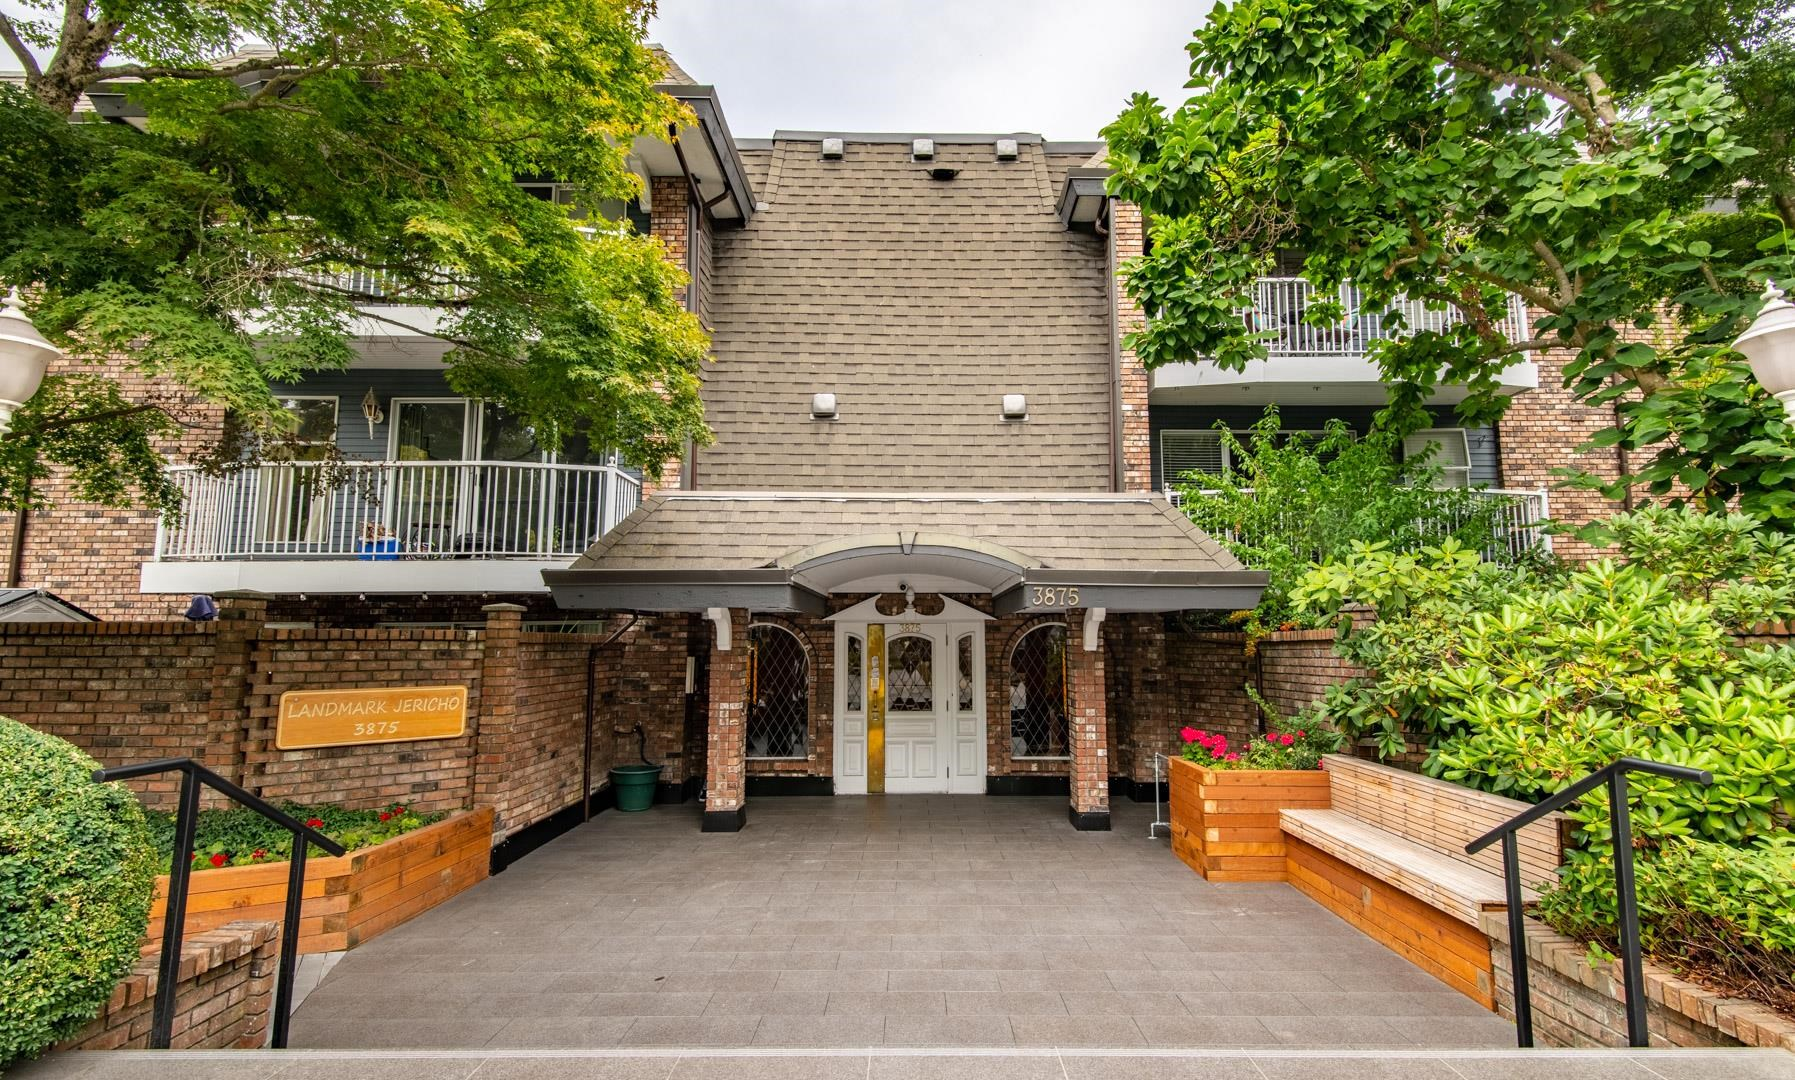 This 1 bed,1 bath Point Grey apartment is in one of the most desirable locations in all of Vancouver by the beaches at Jericho, Locarno &  Spanish Banks. This home is in original condition and would be a great renovation project. It's in close proximity to UBC & Kitsilano and just steps to W 4th Ave. shops and dining. Recently completed building updates include: plumbing, carpets, new paint inside & outside, hallways, piping, roof and parking membrane. A proactive Strata assures the value of your investment. The building includes free shared laundry & bike storage. This unit has 1 parking, 1 locker & plenty of free street parking. Heat & hot water are included in the monthly strata fee.